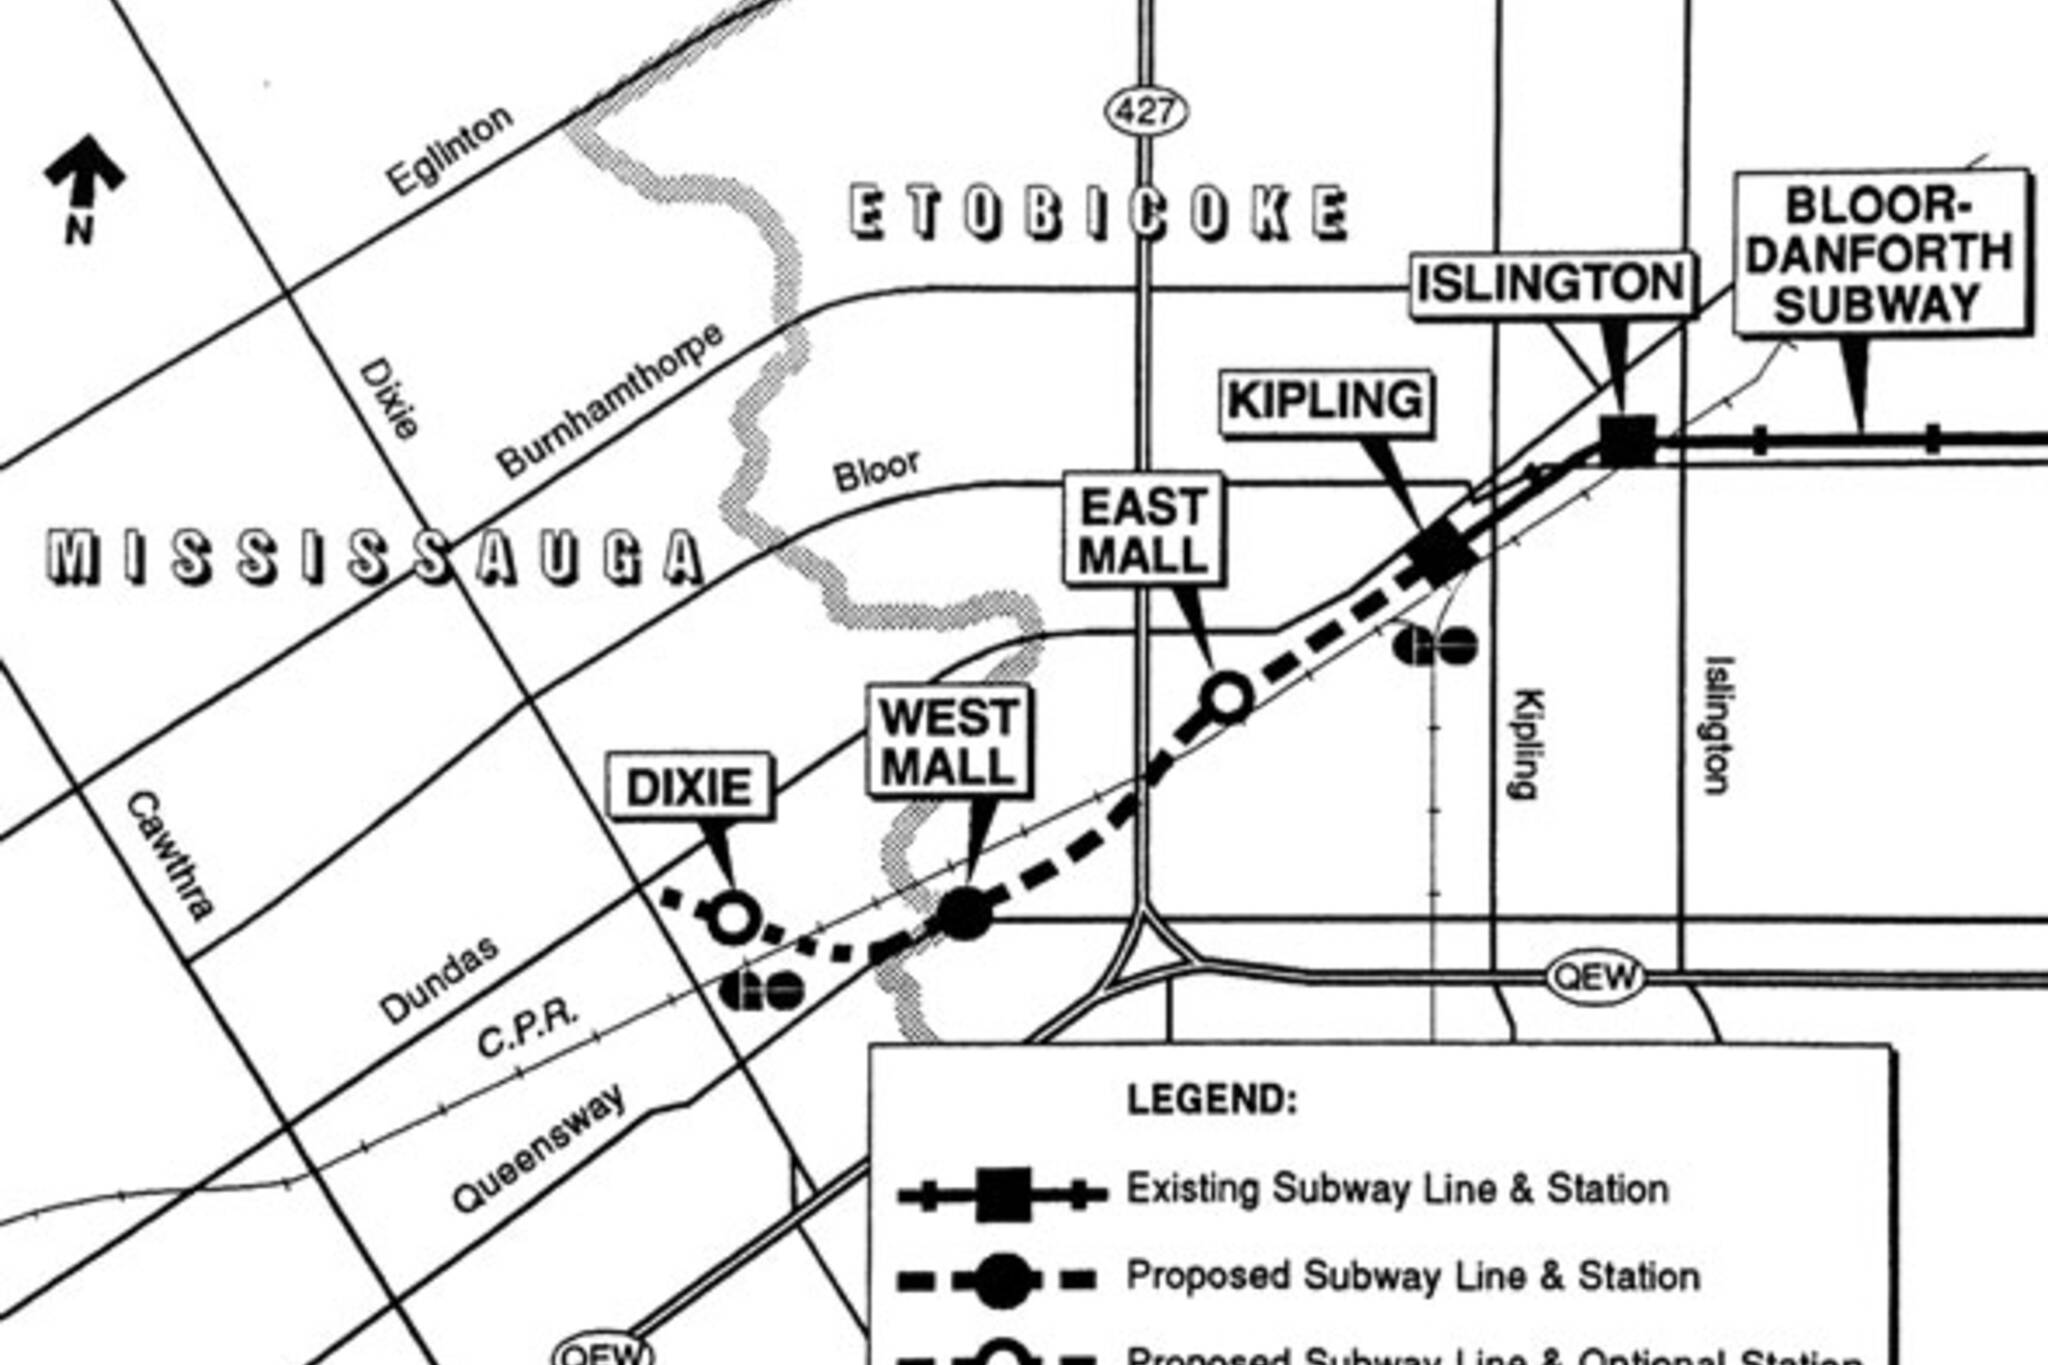 toronto subway extension